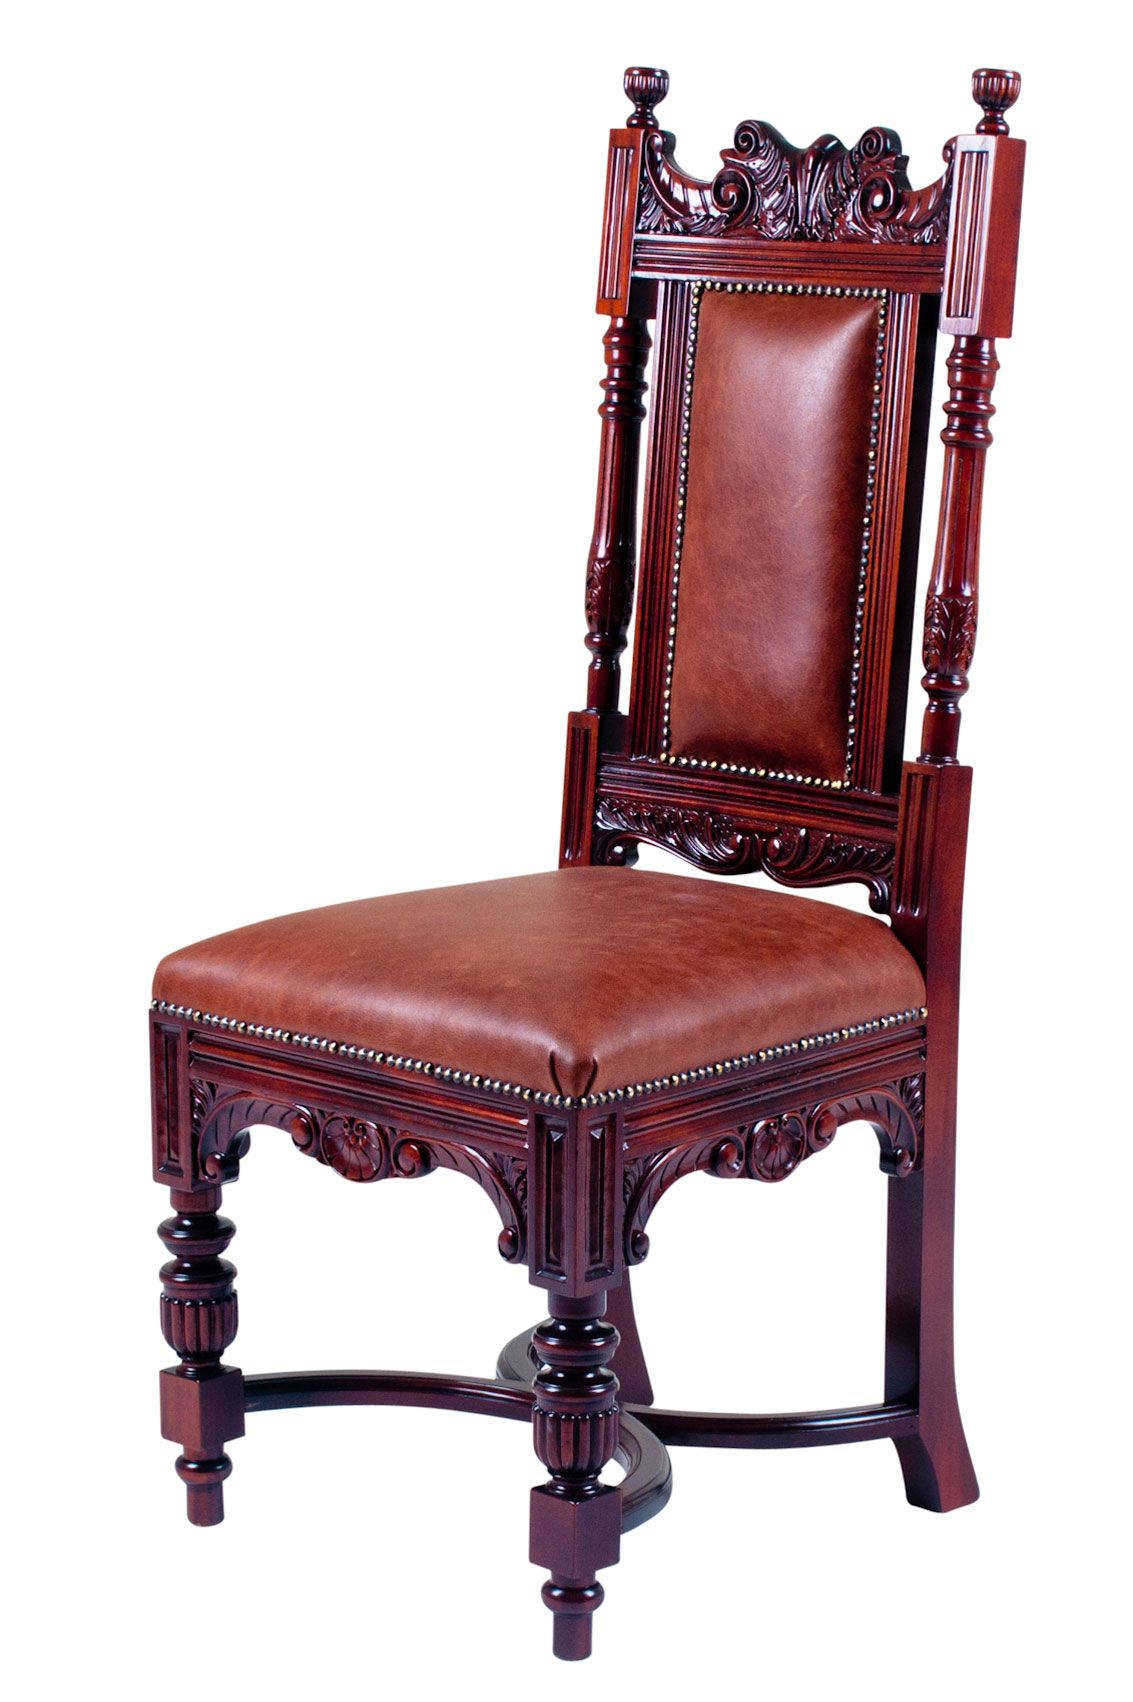 Edward dining chair an upholstered late victorian